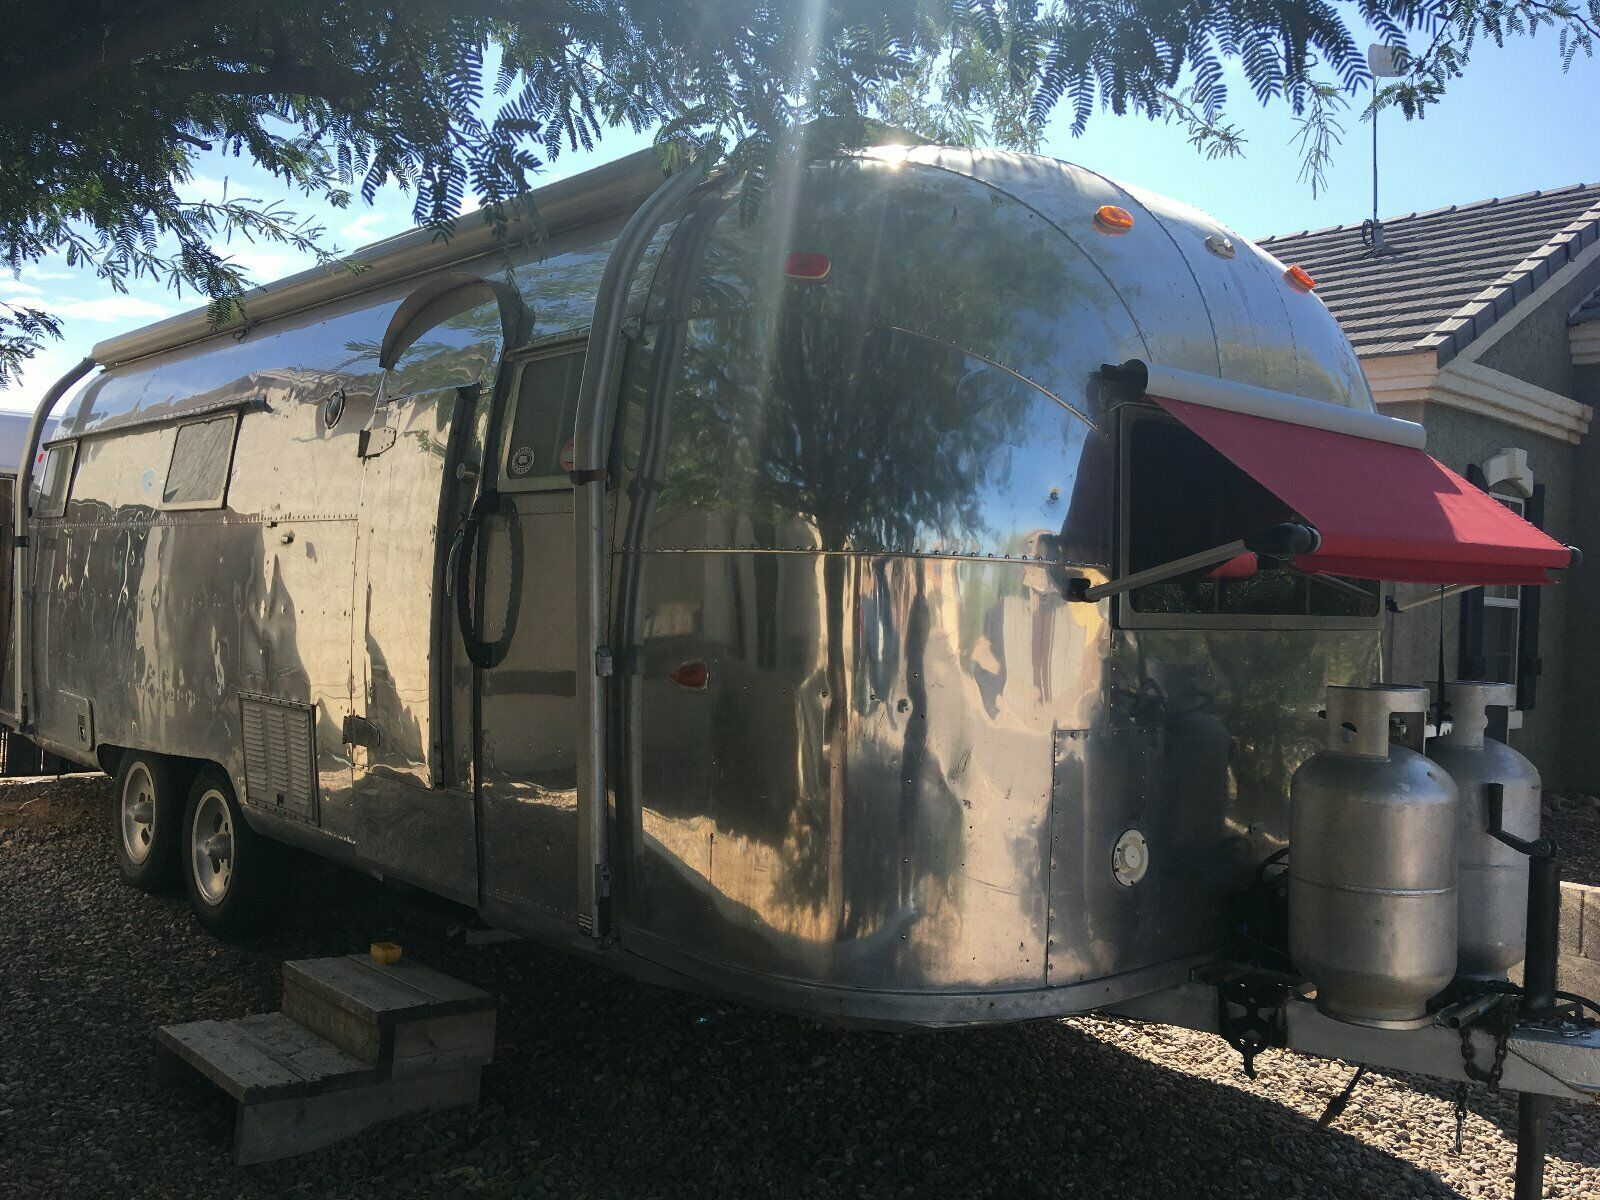 restored 1957 Airstream camper for sale